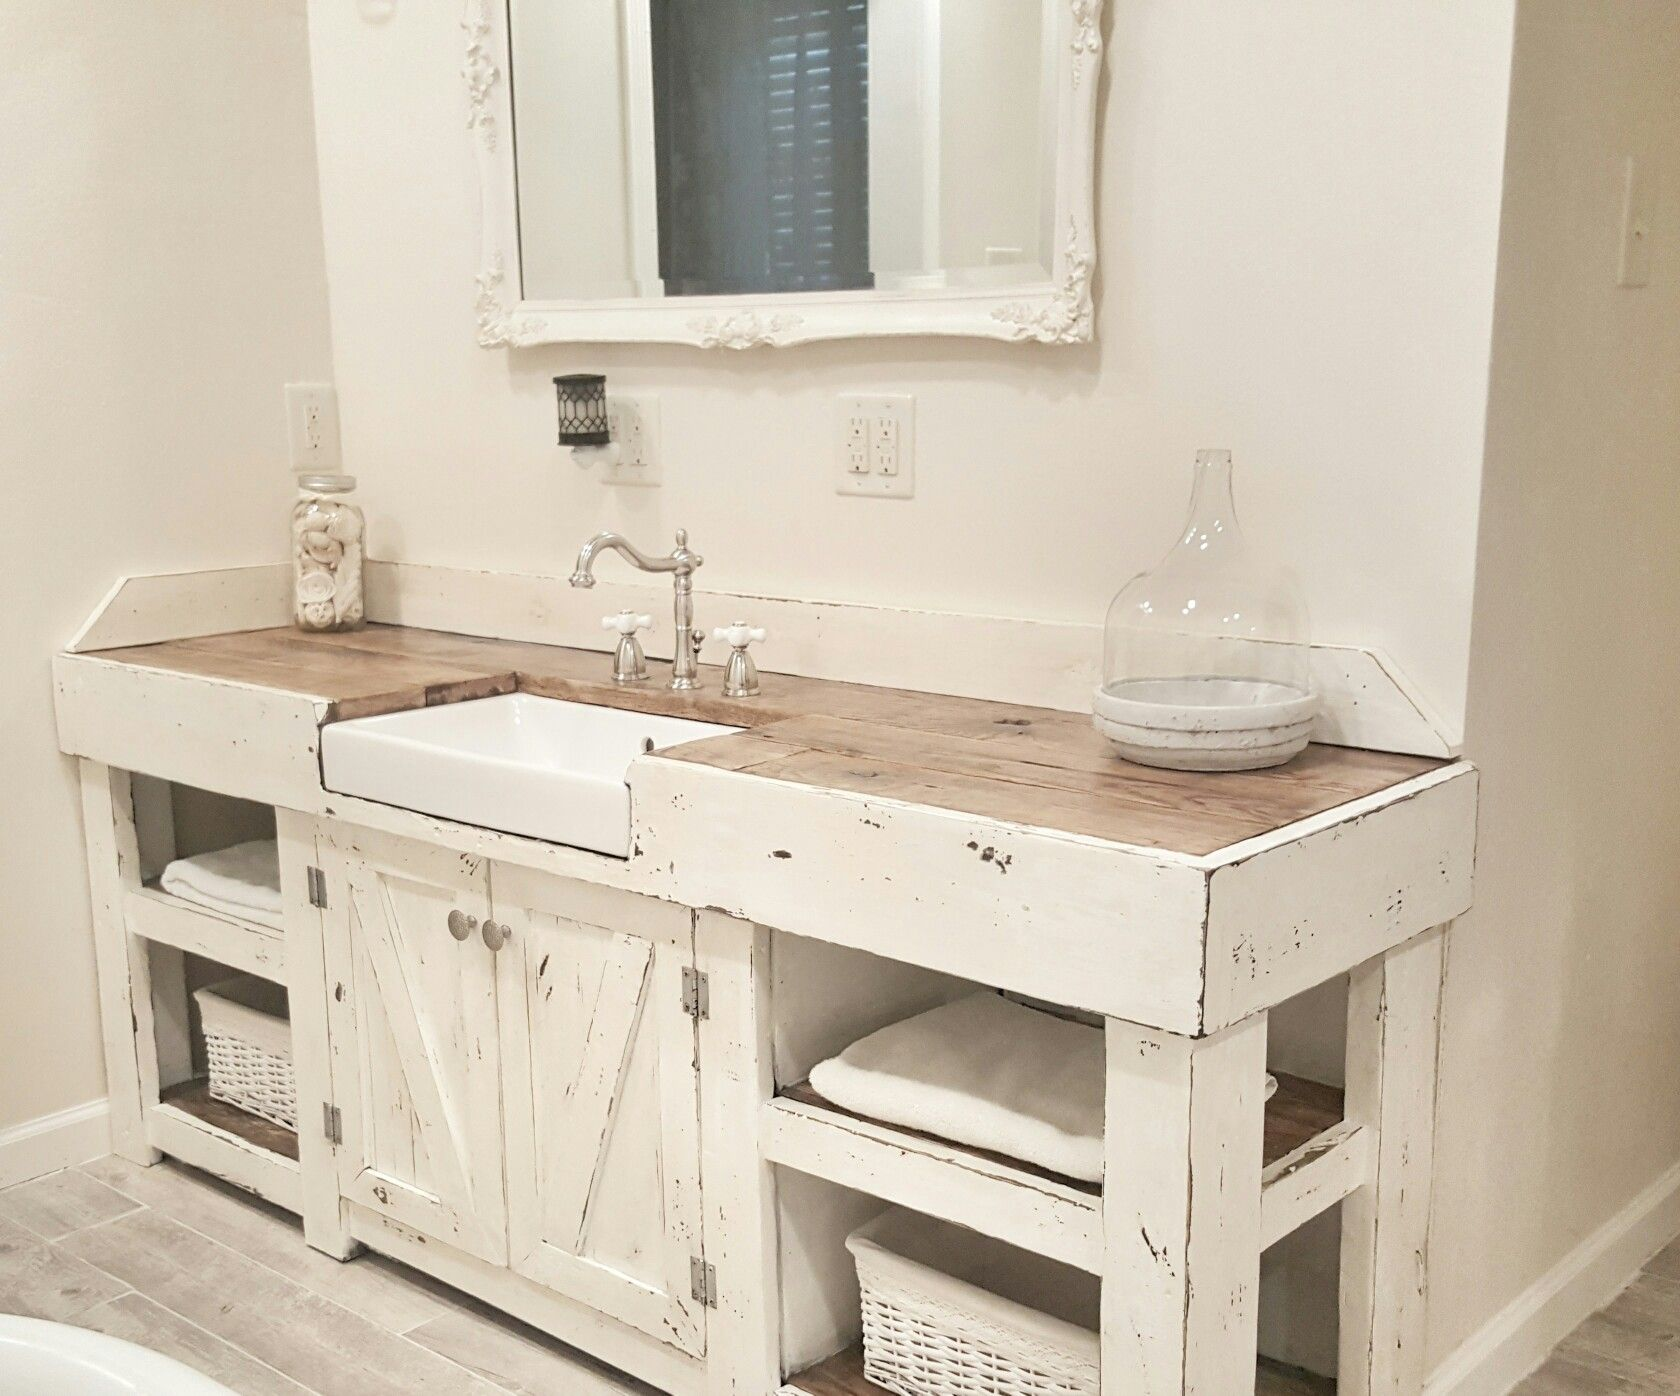 1c9ea1e52f15220660651c073232cac5 Paint Ideas Kitchen Cabinets Biscuit on kitchen ideas with white cabinets, vintage cabinet paint ideas, corner cabinet paint ideas, kitchen decorating ideas, kitchen wall ideas, shower paint ideas, computer paint ideas, sofa paint ideas, hoosier cabinet paint ideas, shelves paint ideas, kitchen chair paint ideas, traditional kitchen paint ideas, grill paint ideas, kitchen paint color ideas, kitchen pantry paint ideas, kitchen countertop paint ideas, cheap kitchen paint ideas, kitchen ideas with oak cabinets, green and cream kitchen ideas, tv console paint ideas,